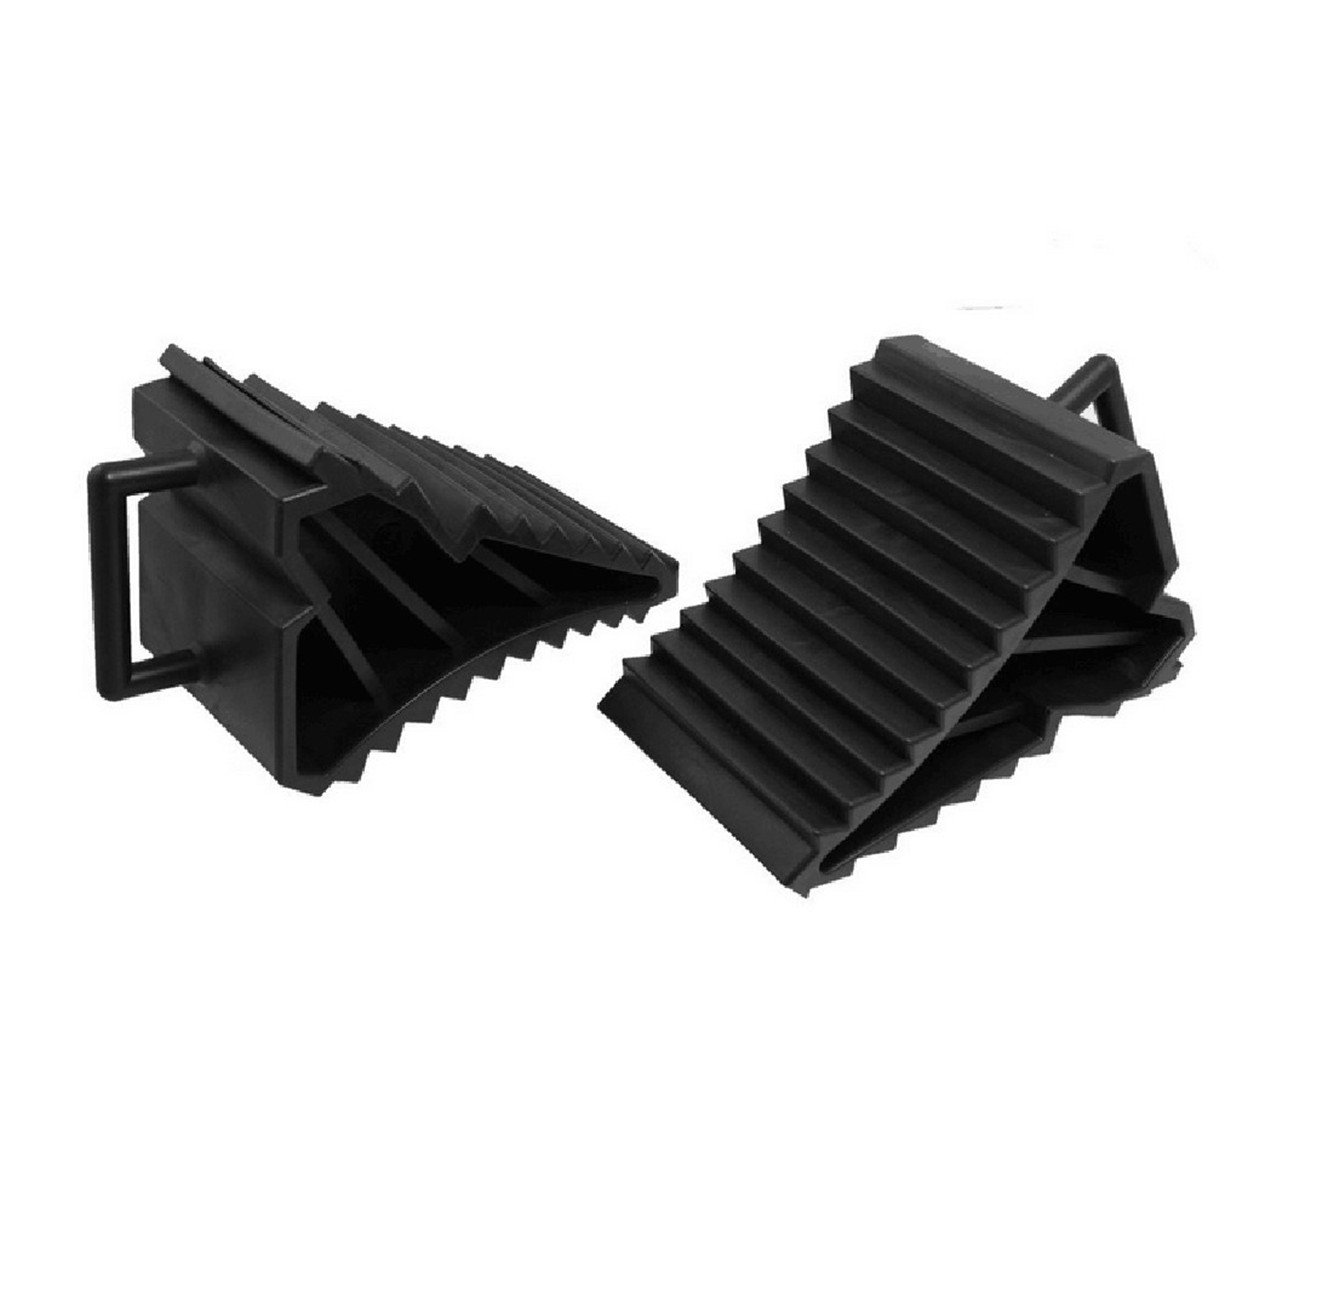 LANFIRE 2 Pcs Antislip Vehicle Car Truck Wheel Tire Chock Stop Block Black